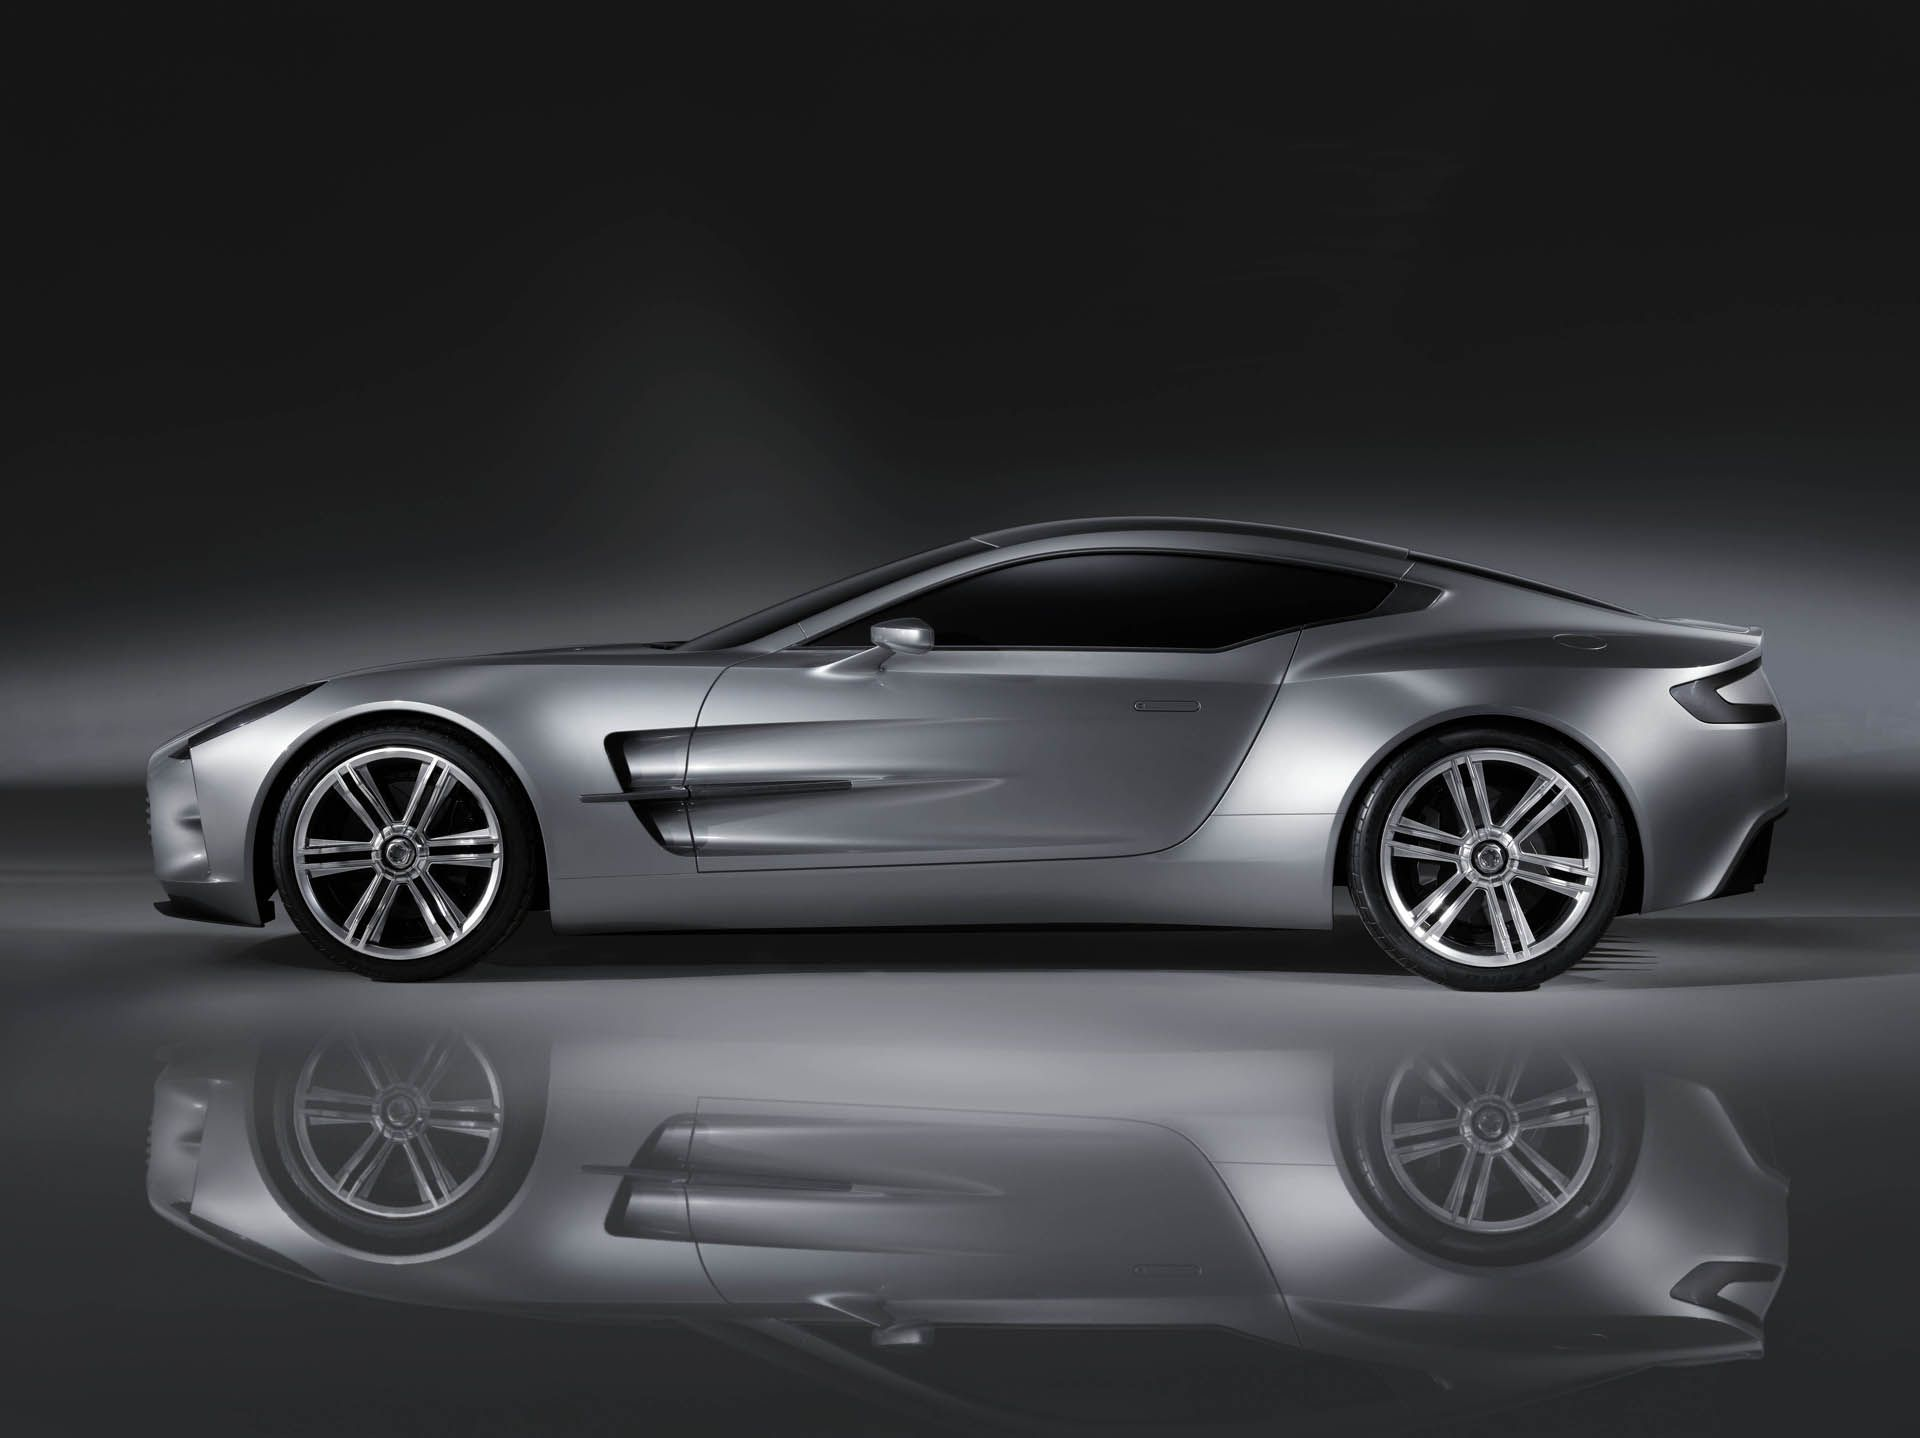 New Aston Martin One 77 Wallpapers Aston Martin Expensive Cars Sports Cars Luxury